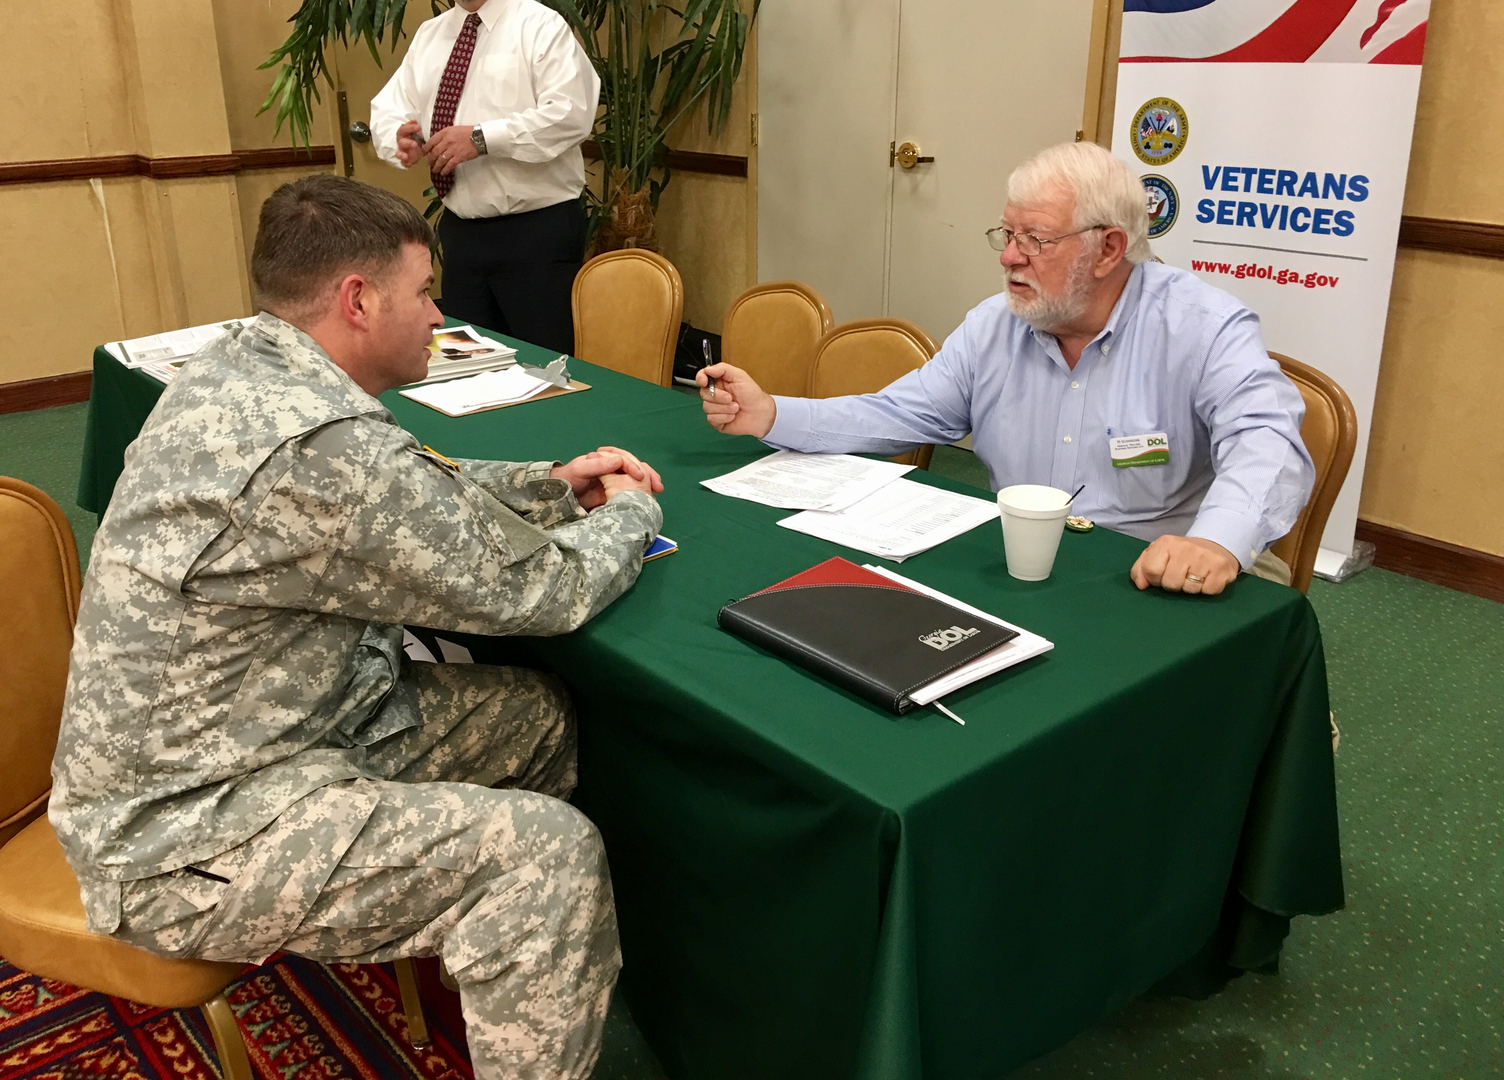 non commissioned officers association military career expos non commissioned officers association military career expos military job fairs veteran services